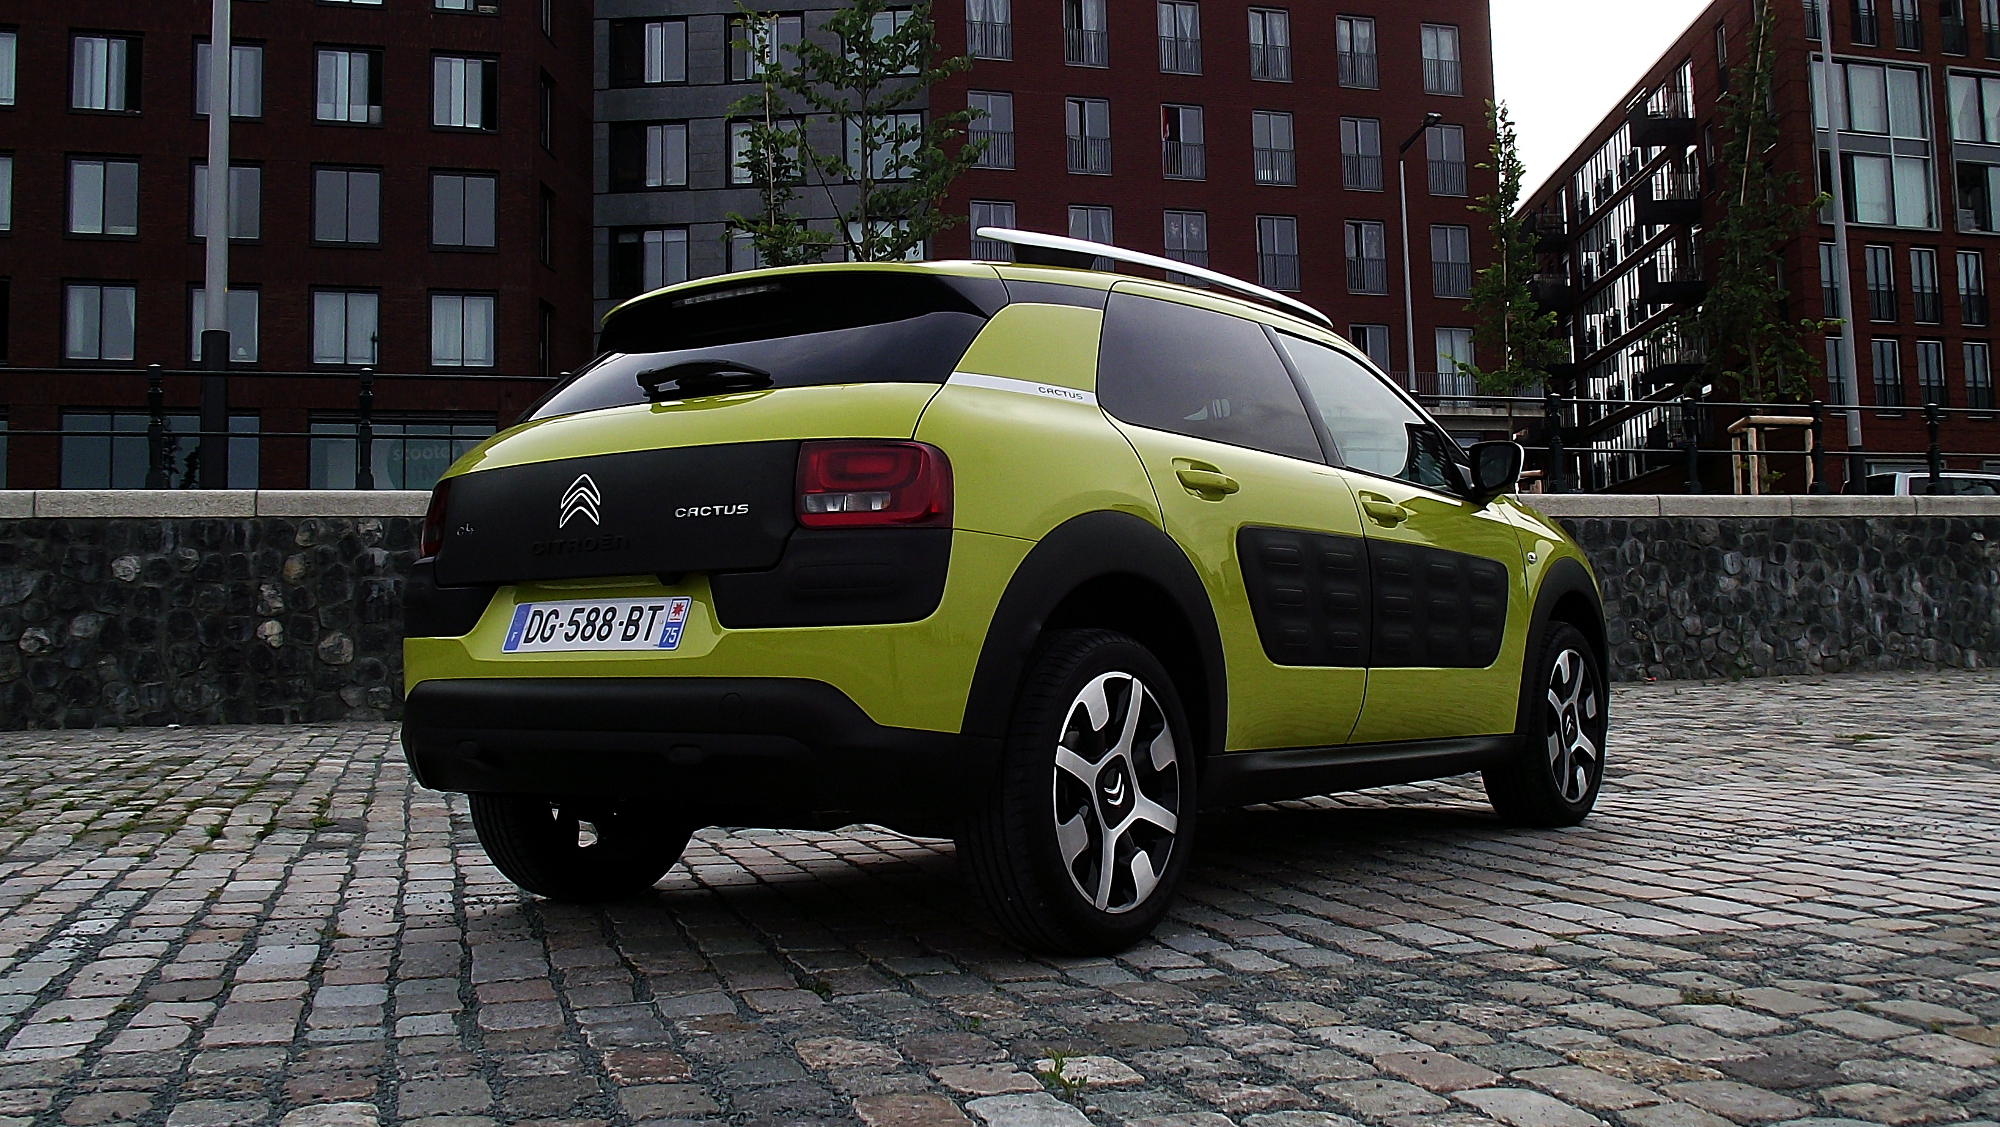 file 2014 citroen c4 cactus feel edition puretech e thp 110 heckansicht hello yellow jpg. Black Bedroom Furniture Sets. Home Design Ideas